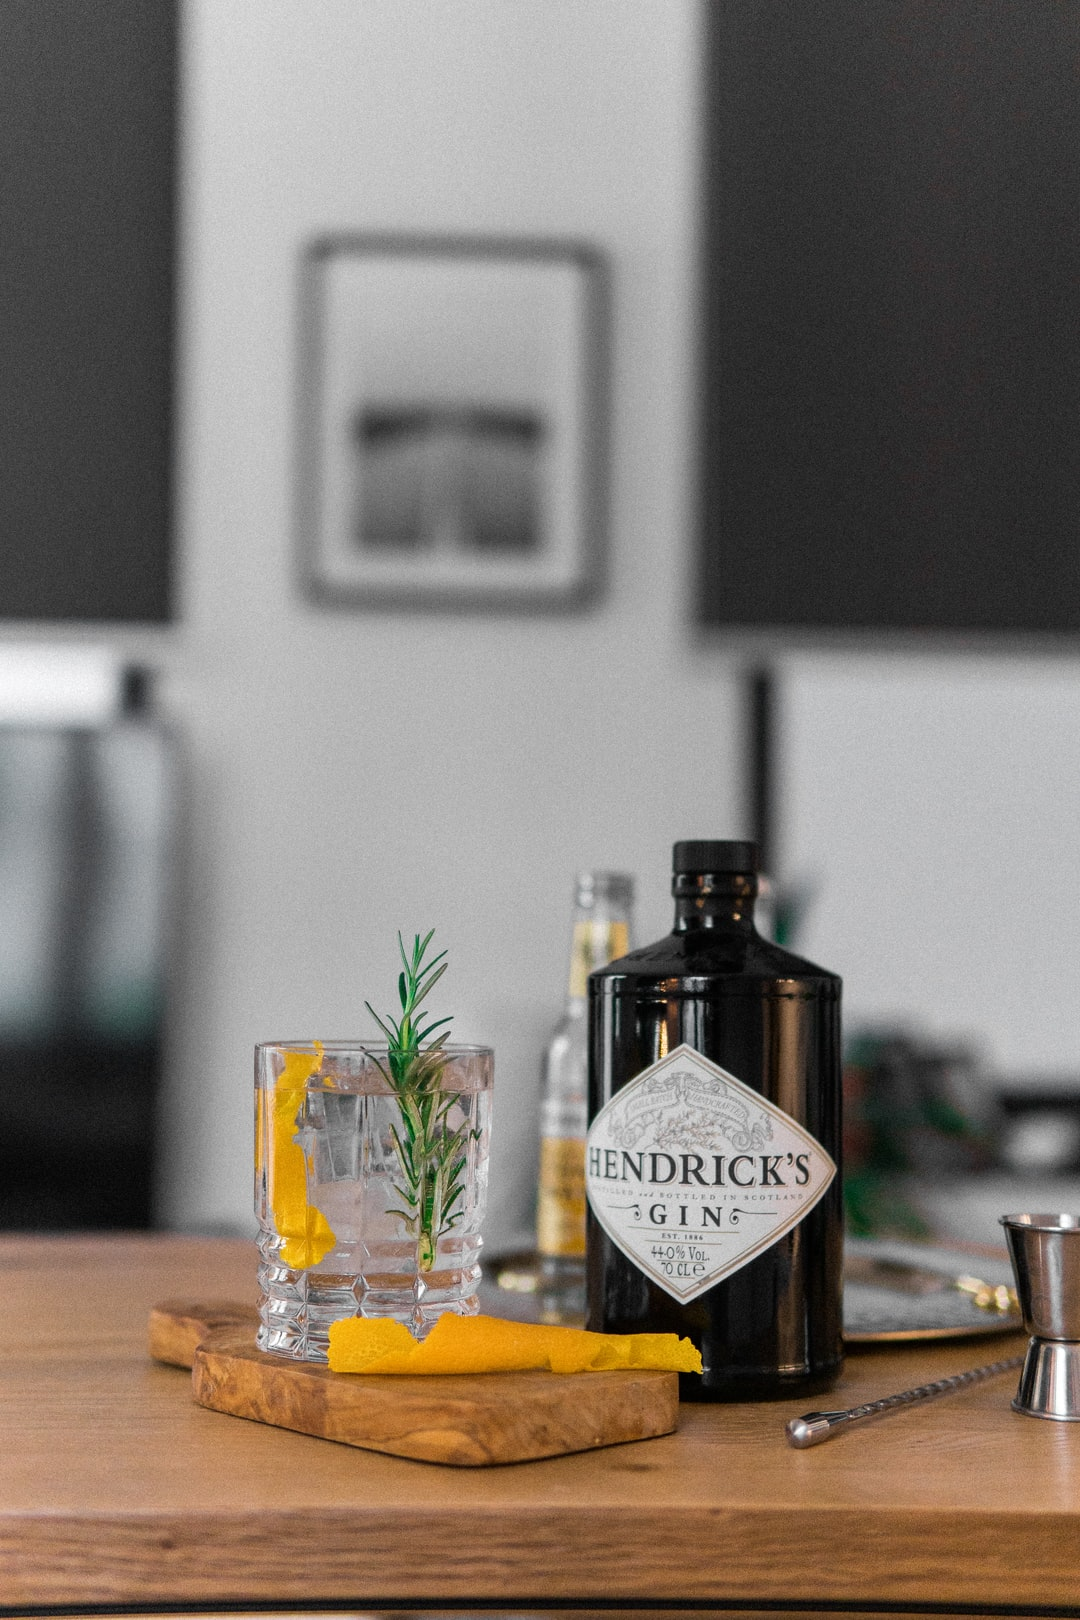 Hendrick's Gin and Fever-Tree Tonic Water with Rosemary